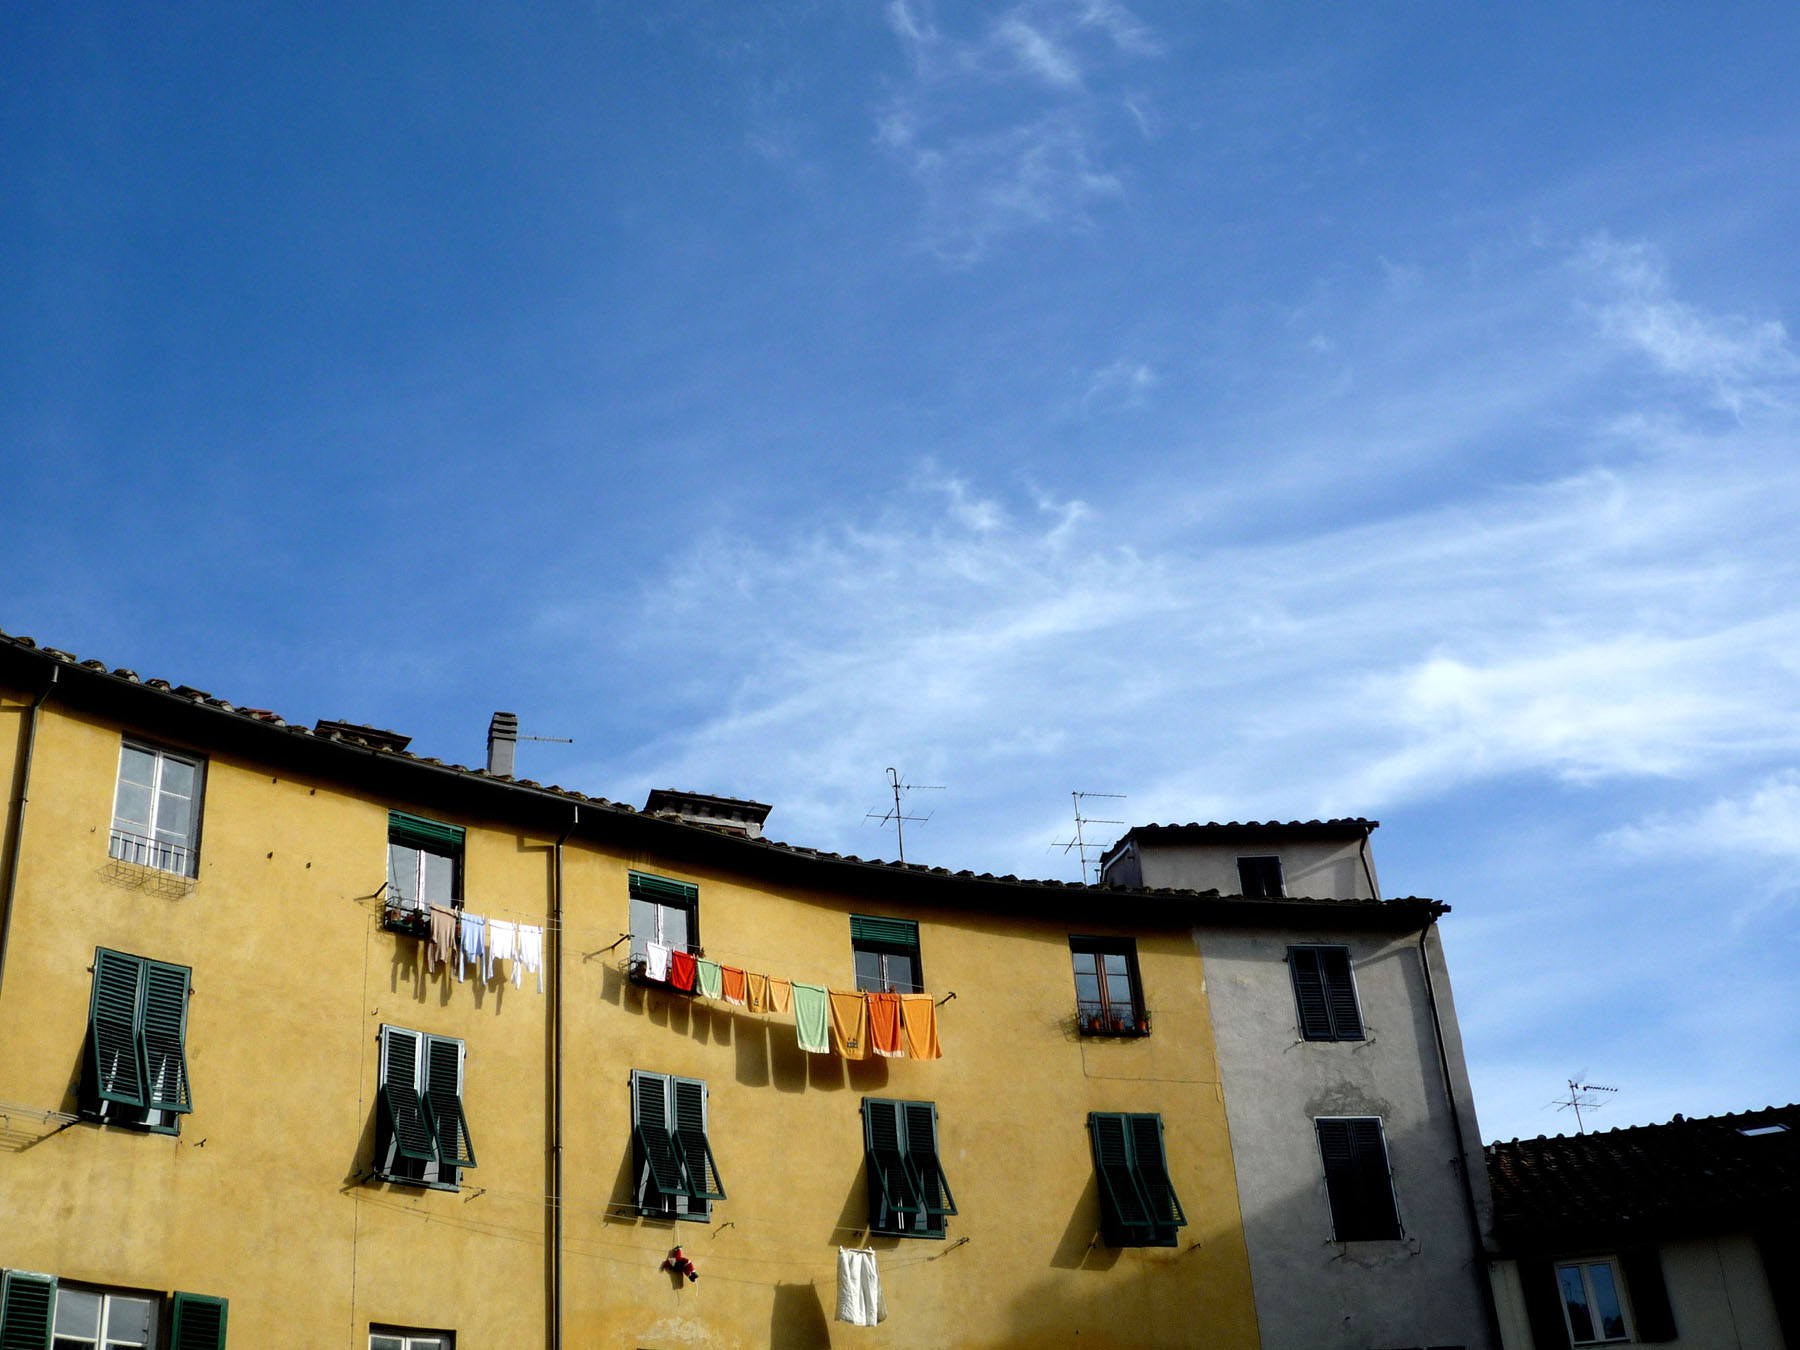 Laundry hanging in piazza dell'ampiteatro